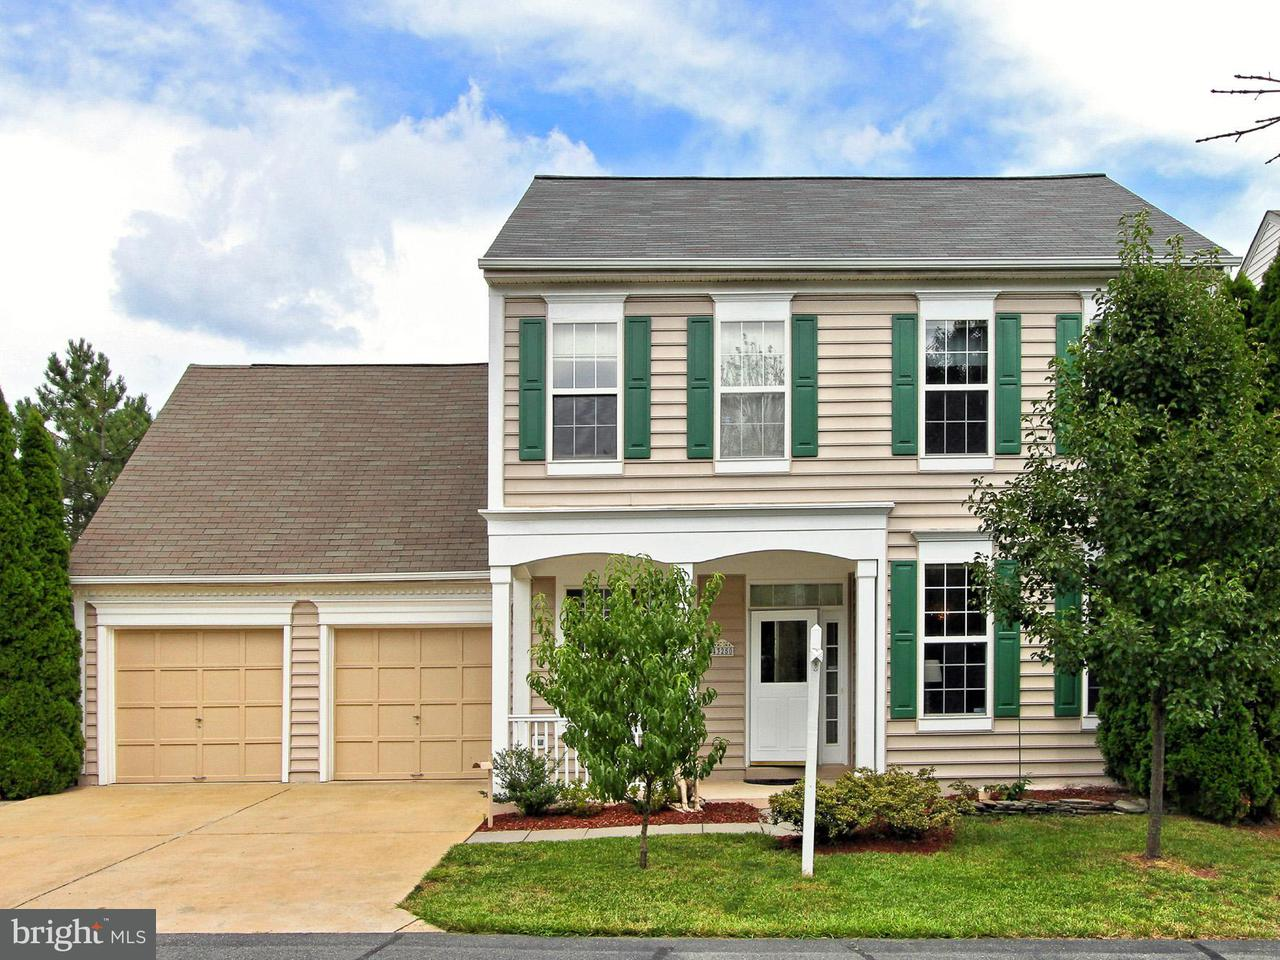 Townhouse for Sale at 43250 DAY LILY TER 43250 DAY LILY TER Ashburn, Virginia 20147 United States